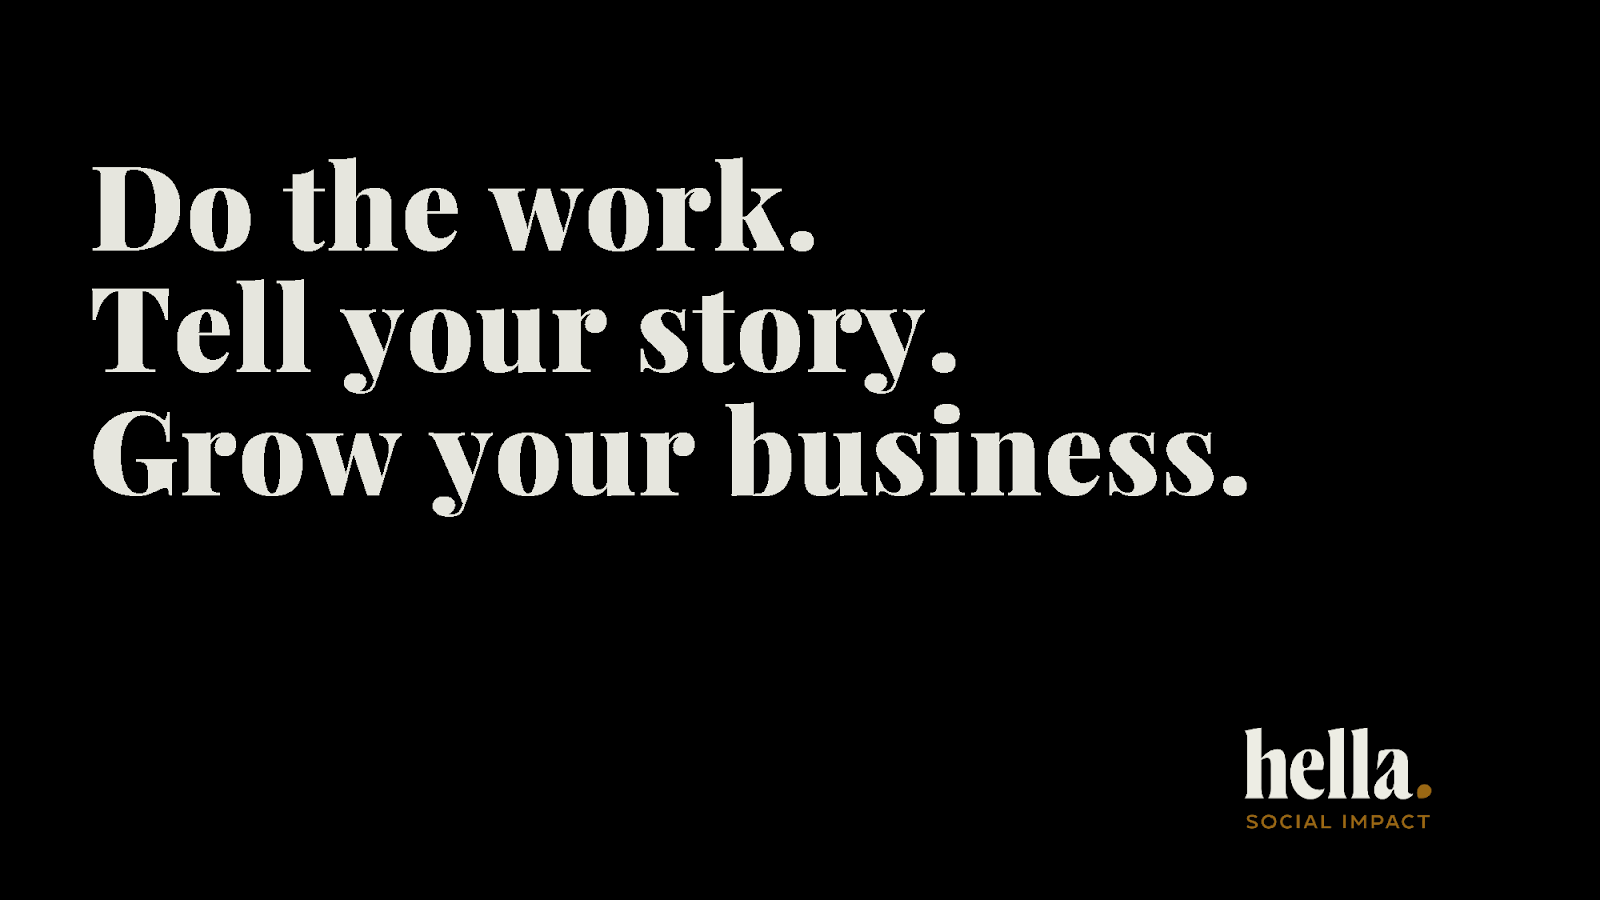 do the work, tell the story, grow your business